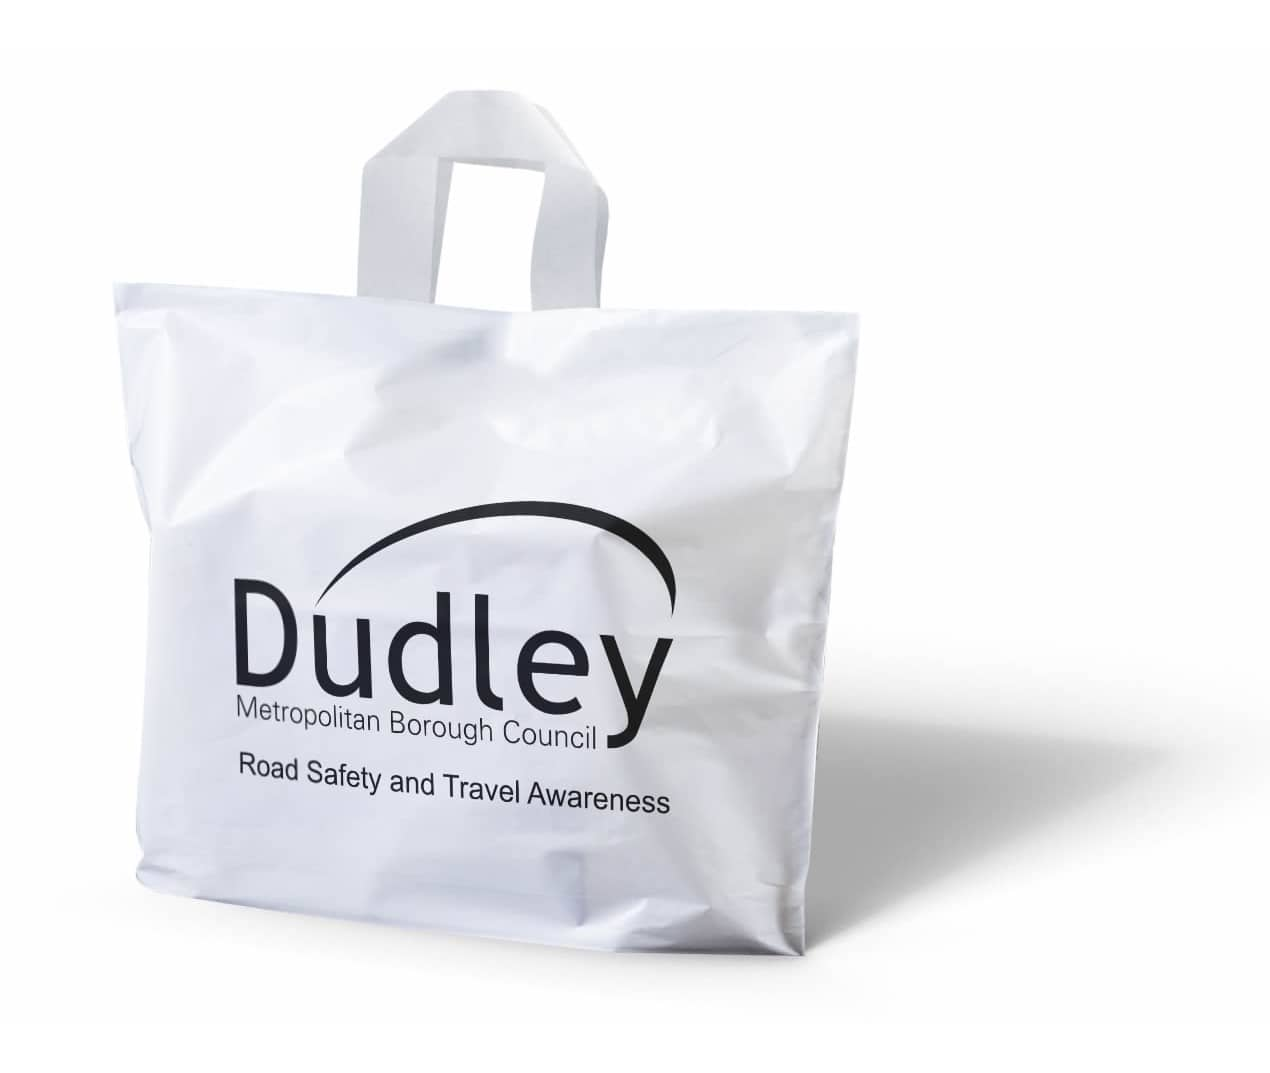 Dudley large printed carrier bag